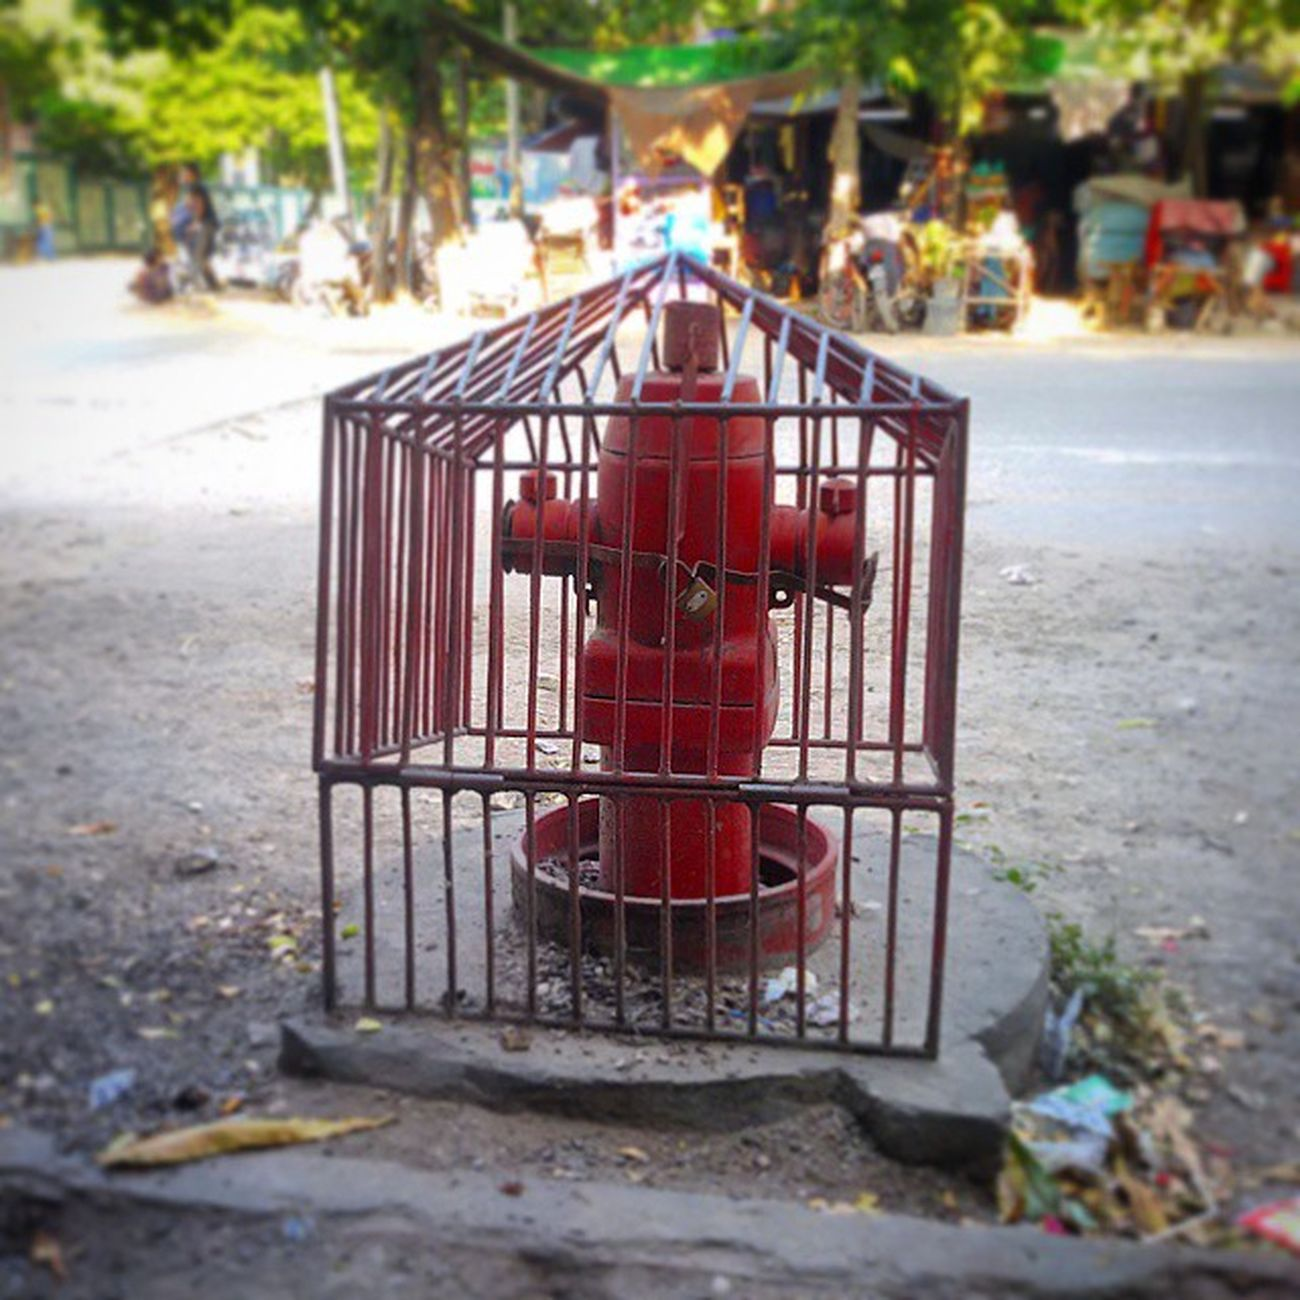 fire hose in the cage. Fire Hose Pipe Firehose Mandalay Myanmar Ingersmyanmar Vscomyanmar